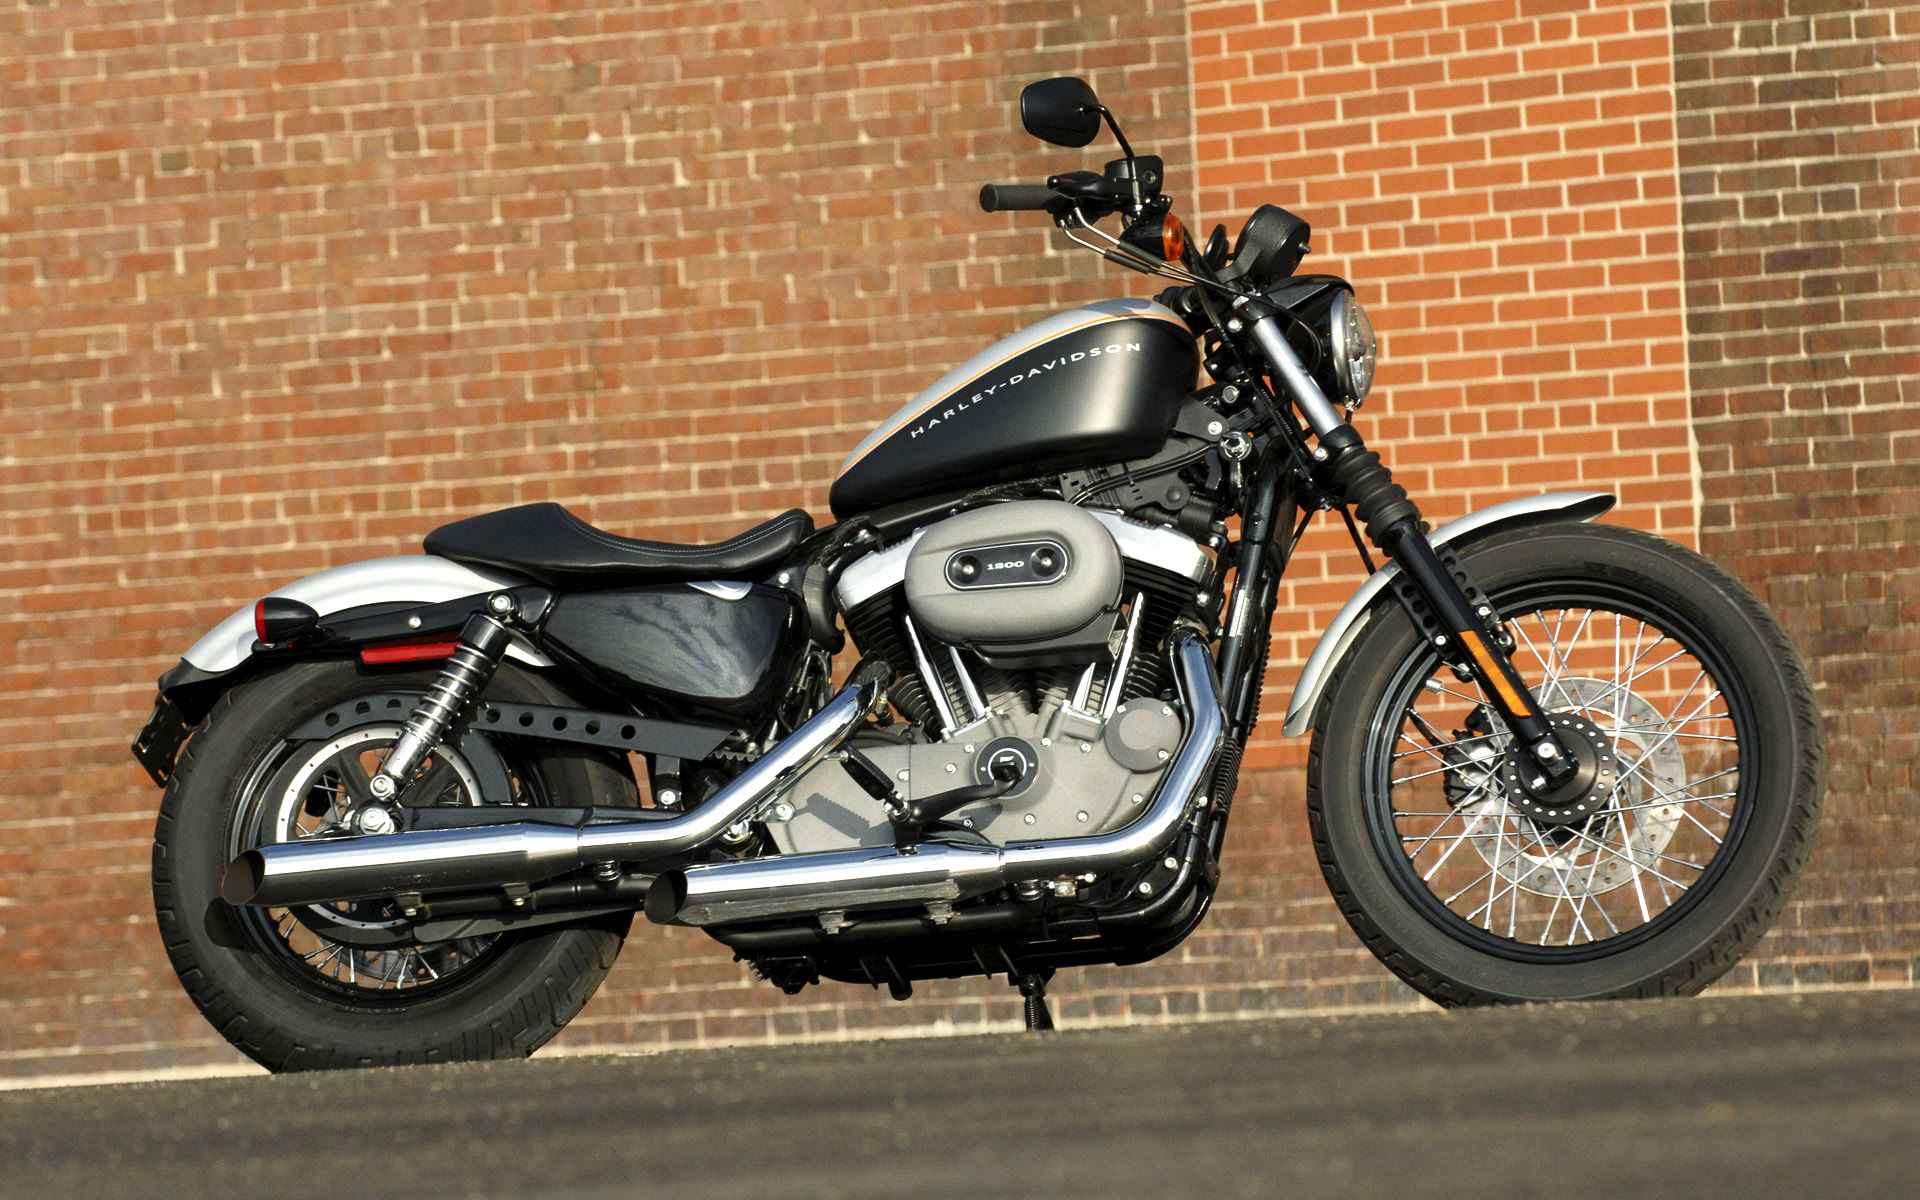 1988 Harley-Davidson XLH Sportster 1200 (reduced effect) #2